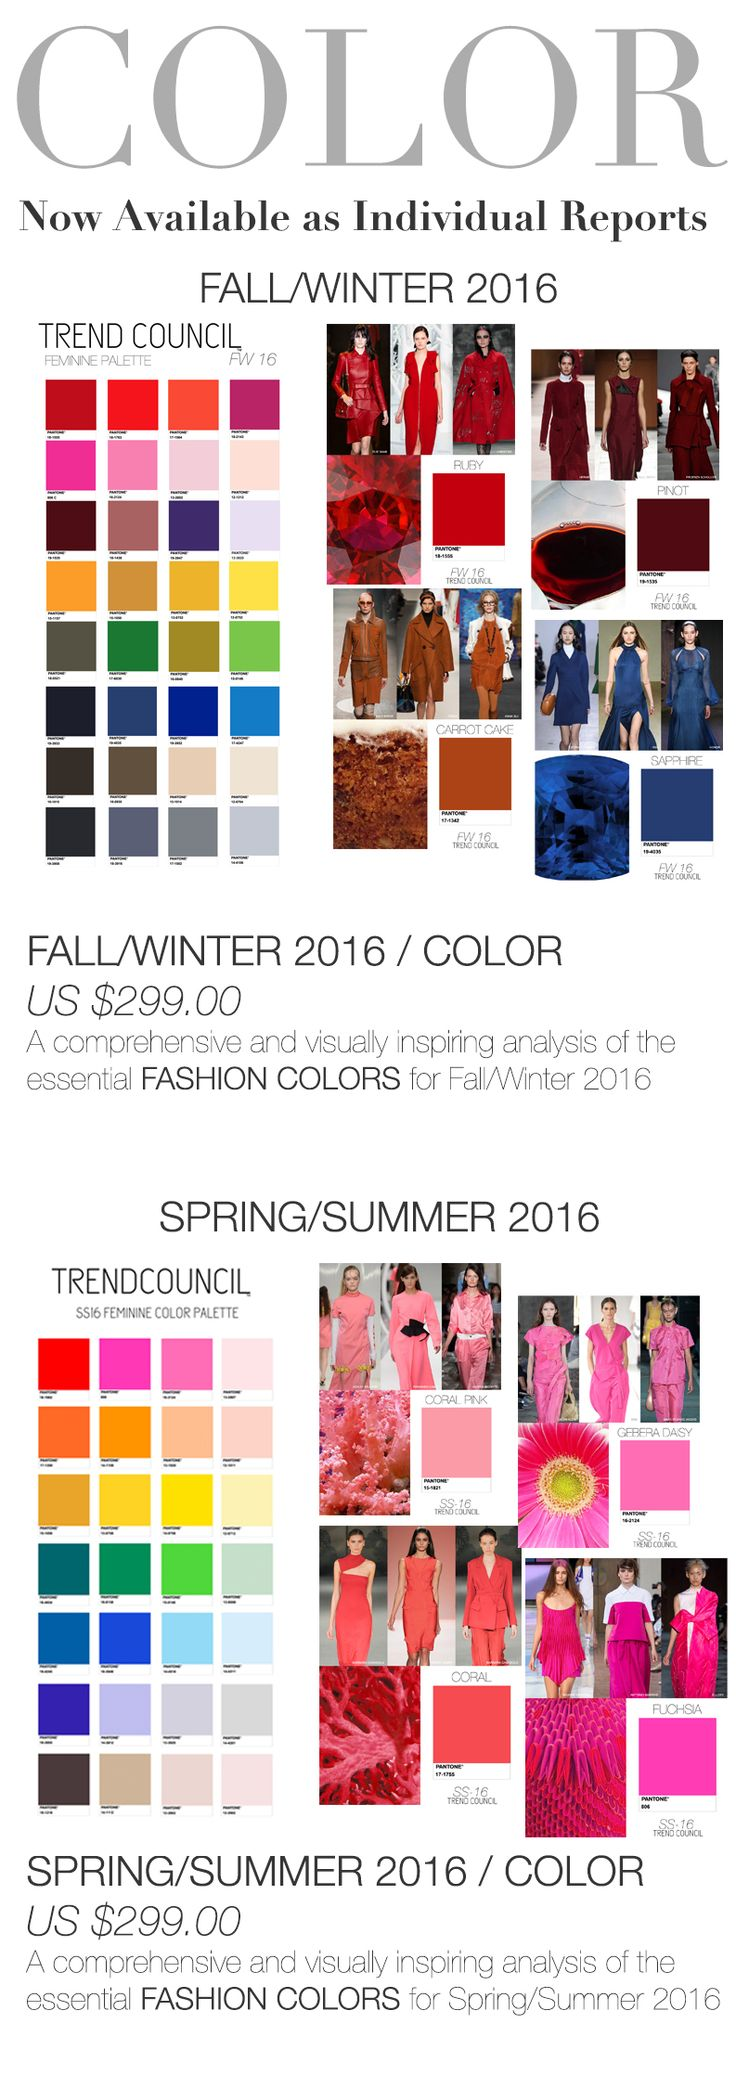 TREND COUNCIL SS & F/W 2016 COLOR